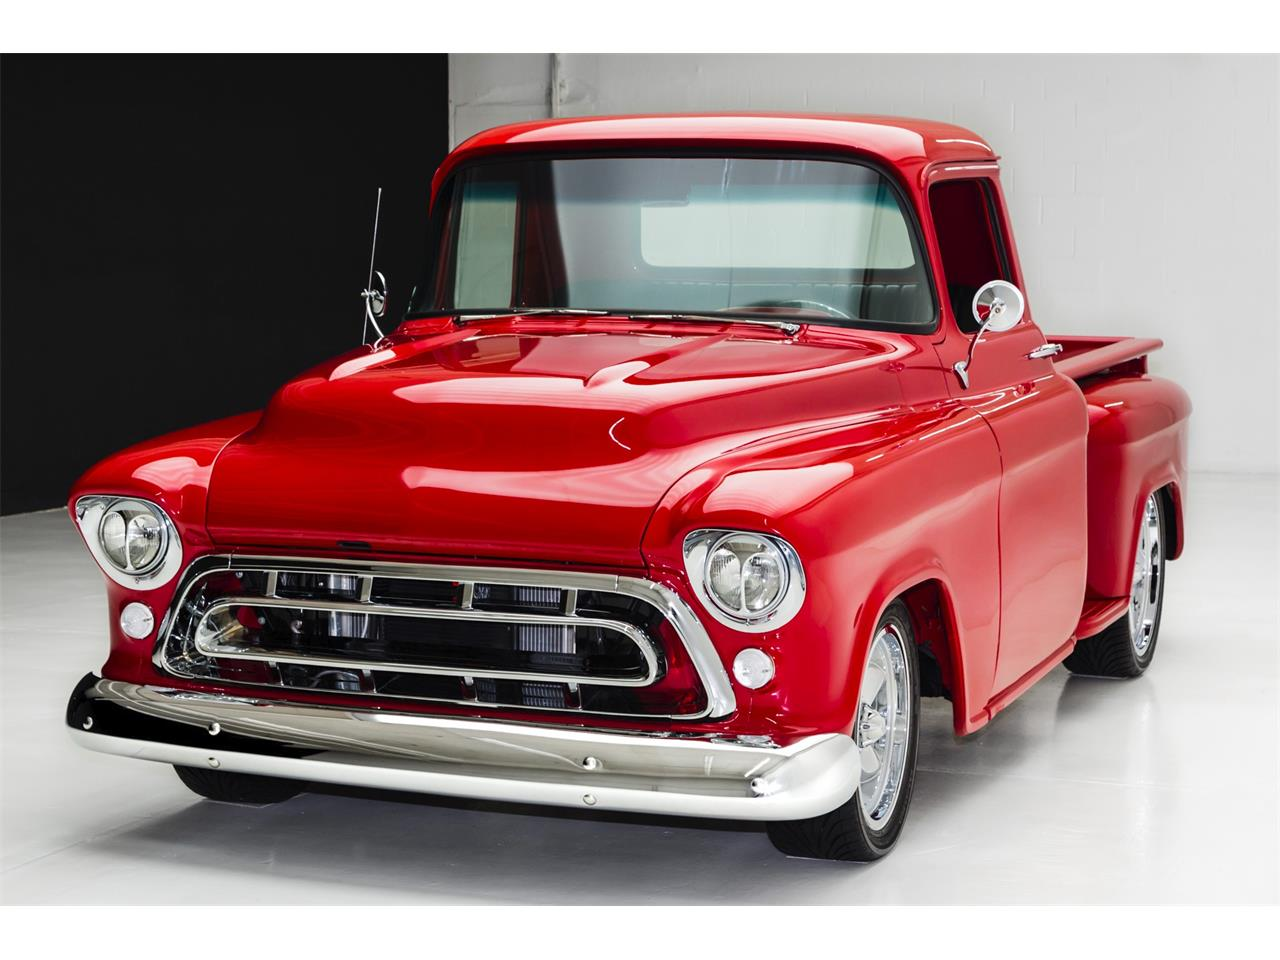 Large Picture of 1957 Chevrolet Pickup Offered by American Dream Machines - KM69